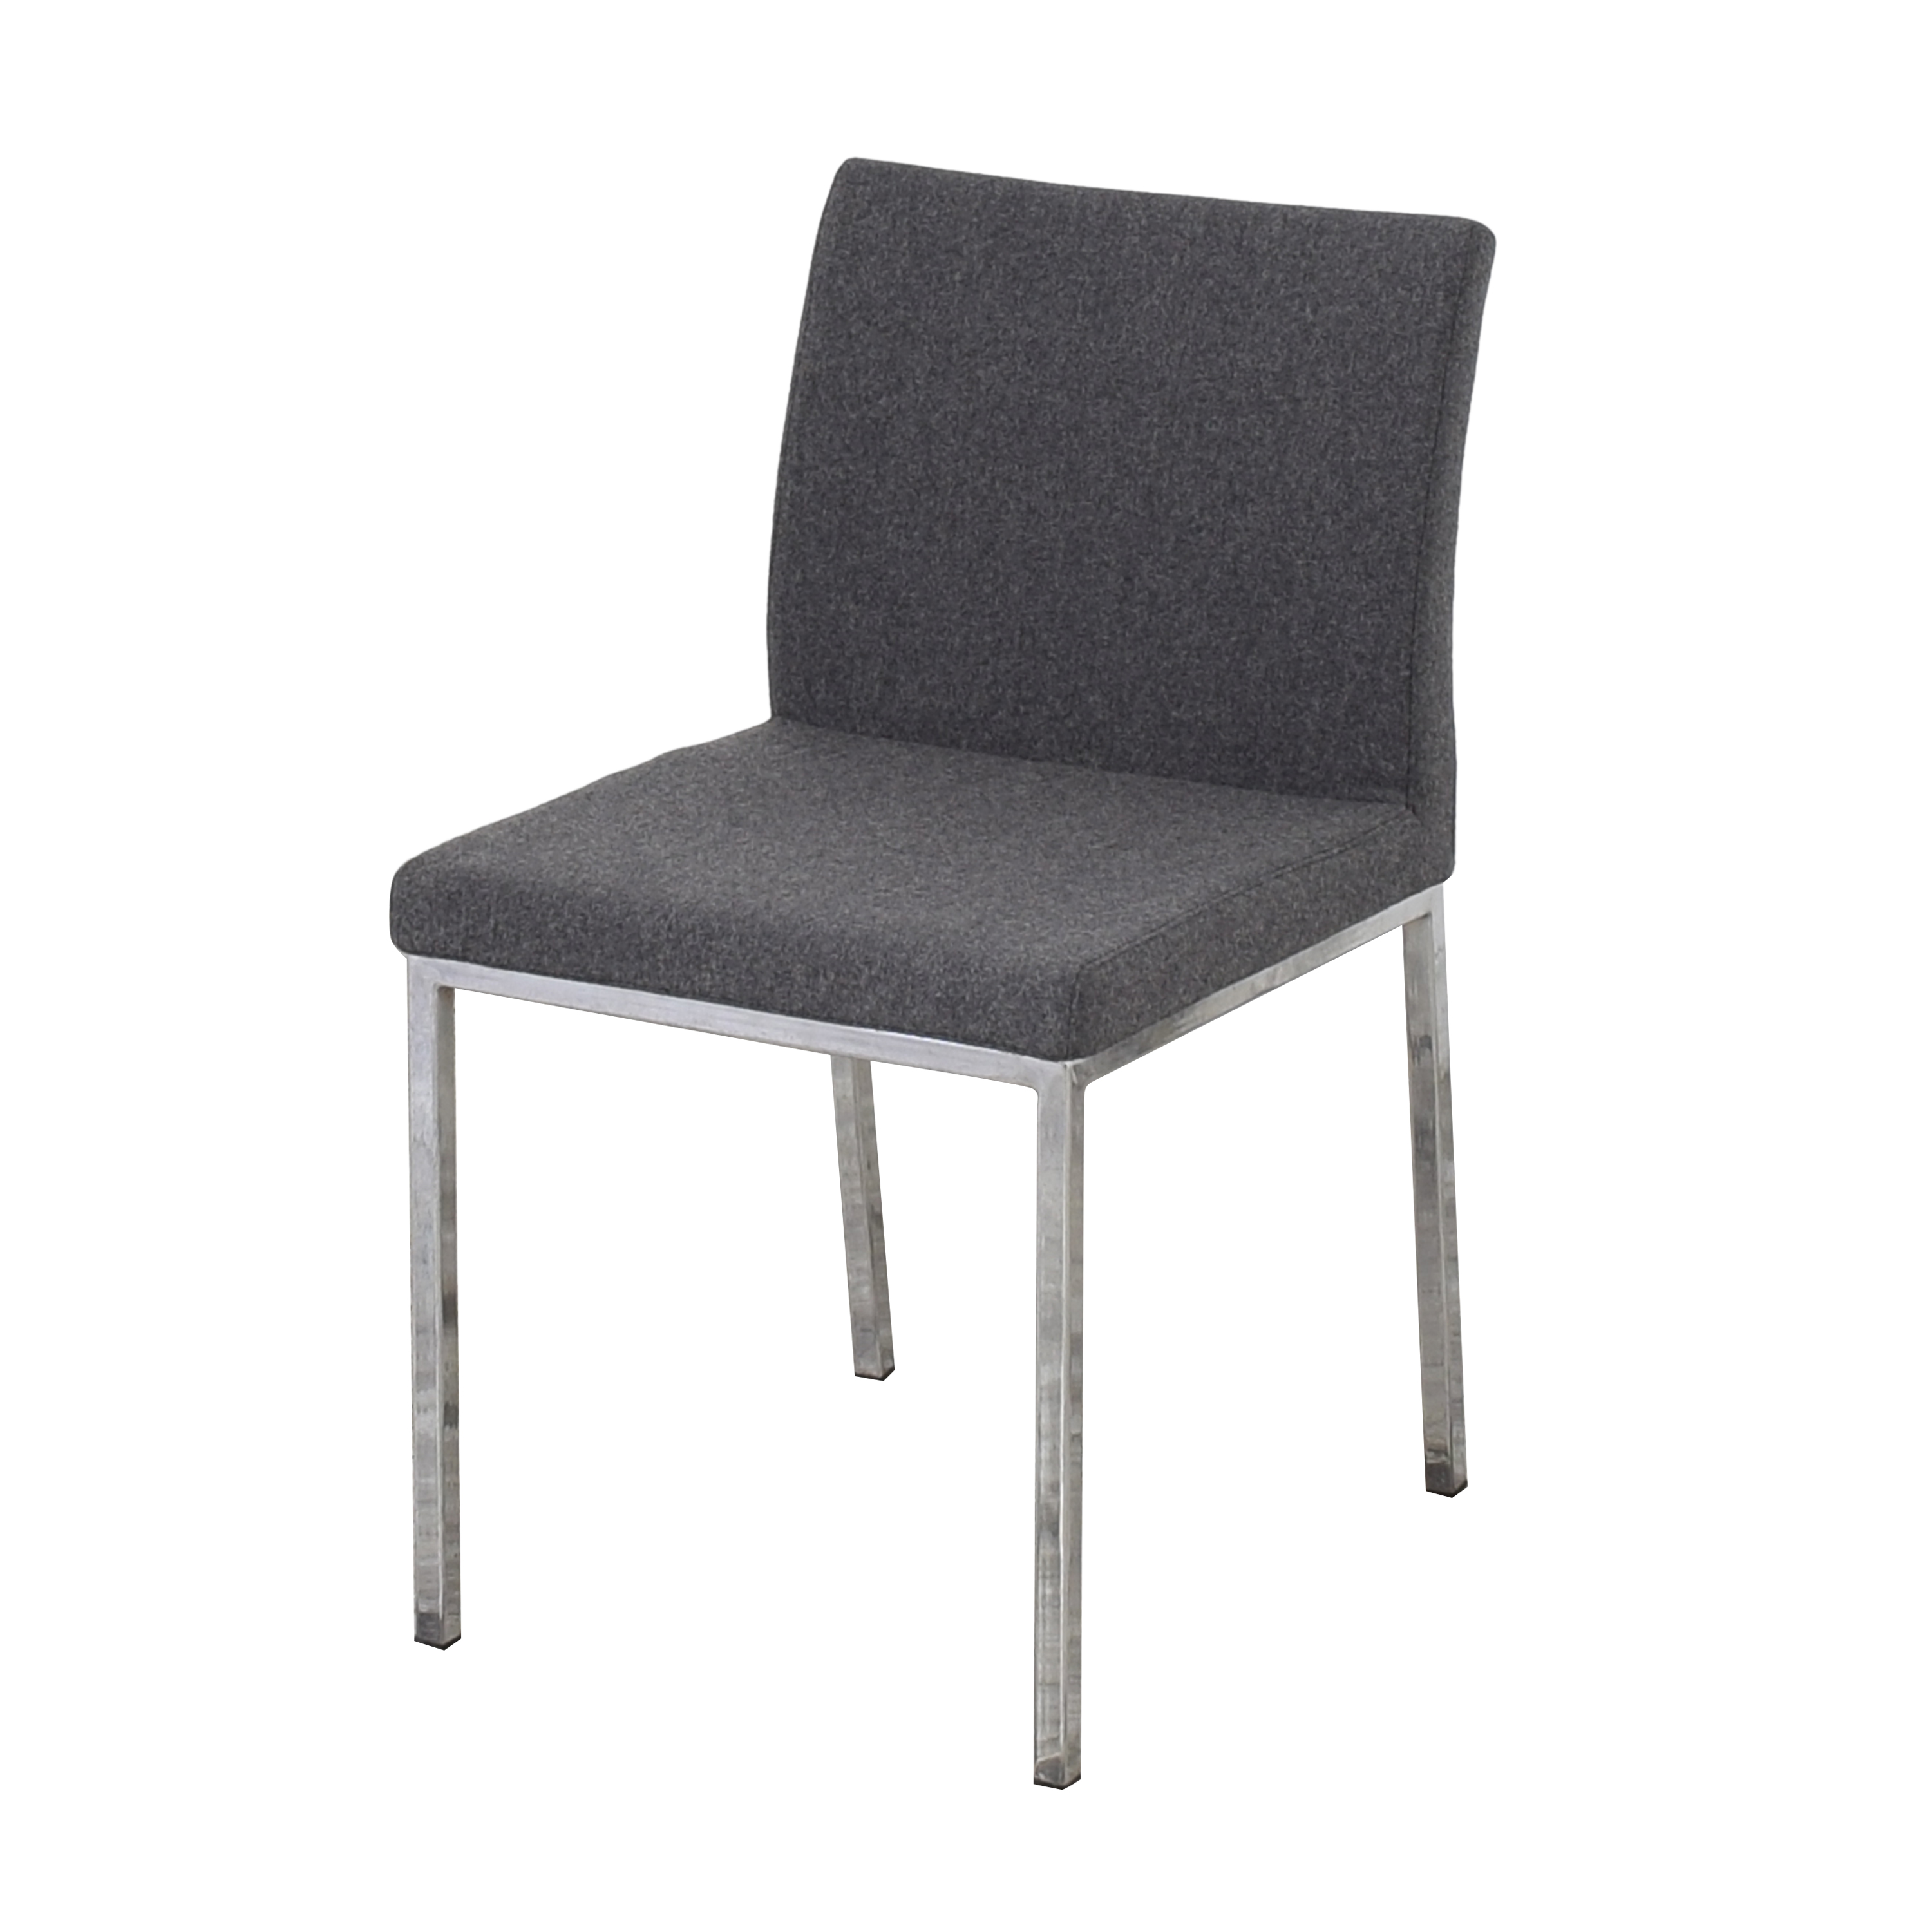 Crate & Barrel Crate & Barrel Upholstered Dining Chairs coupon